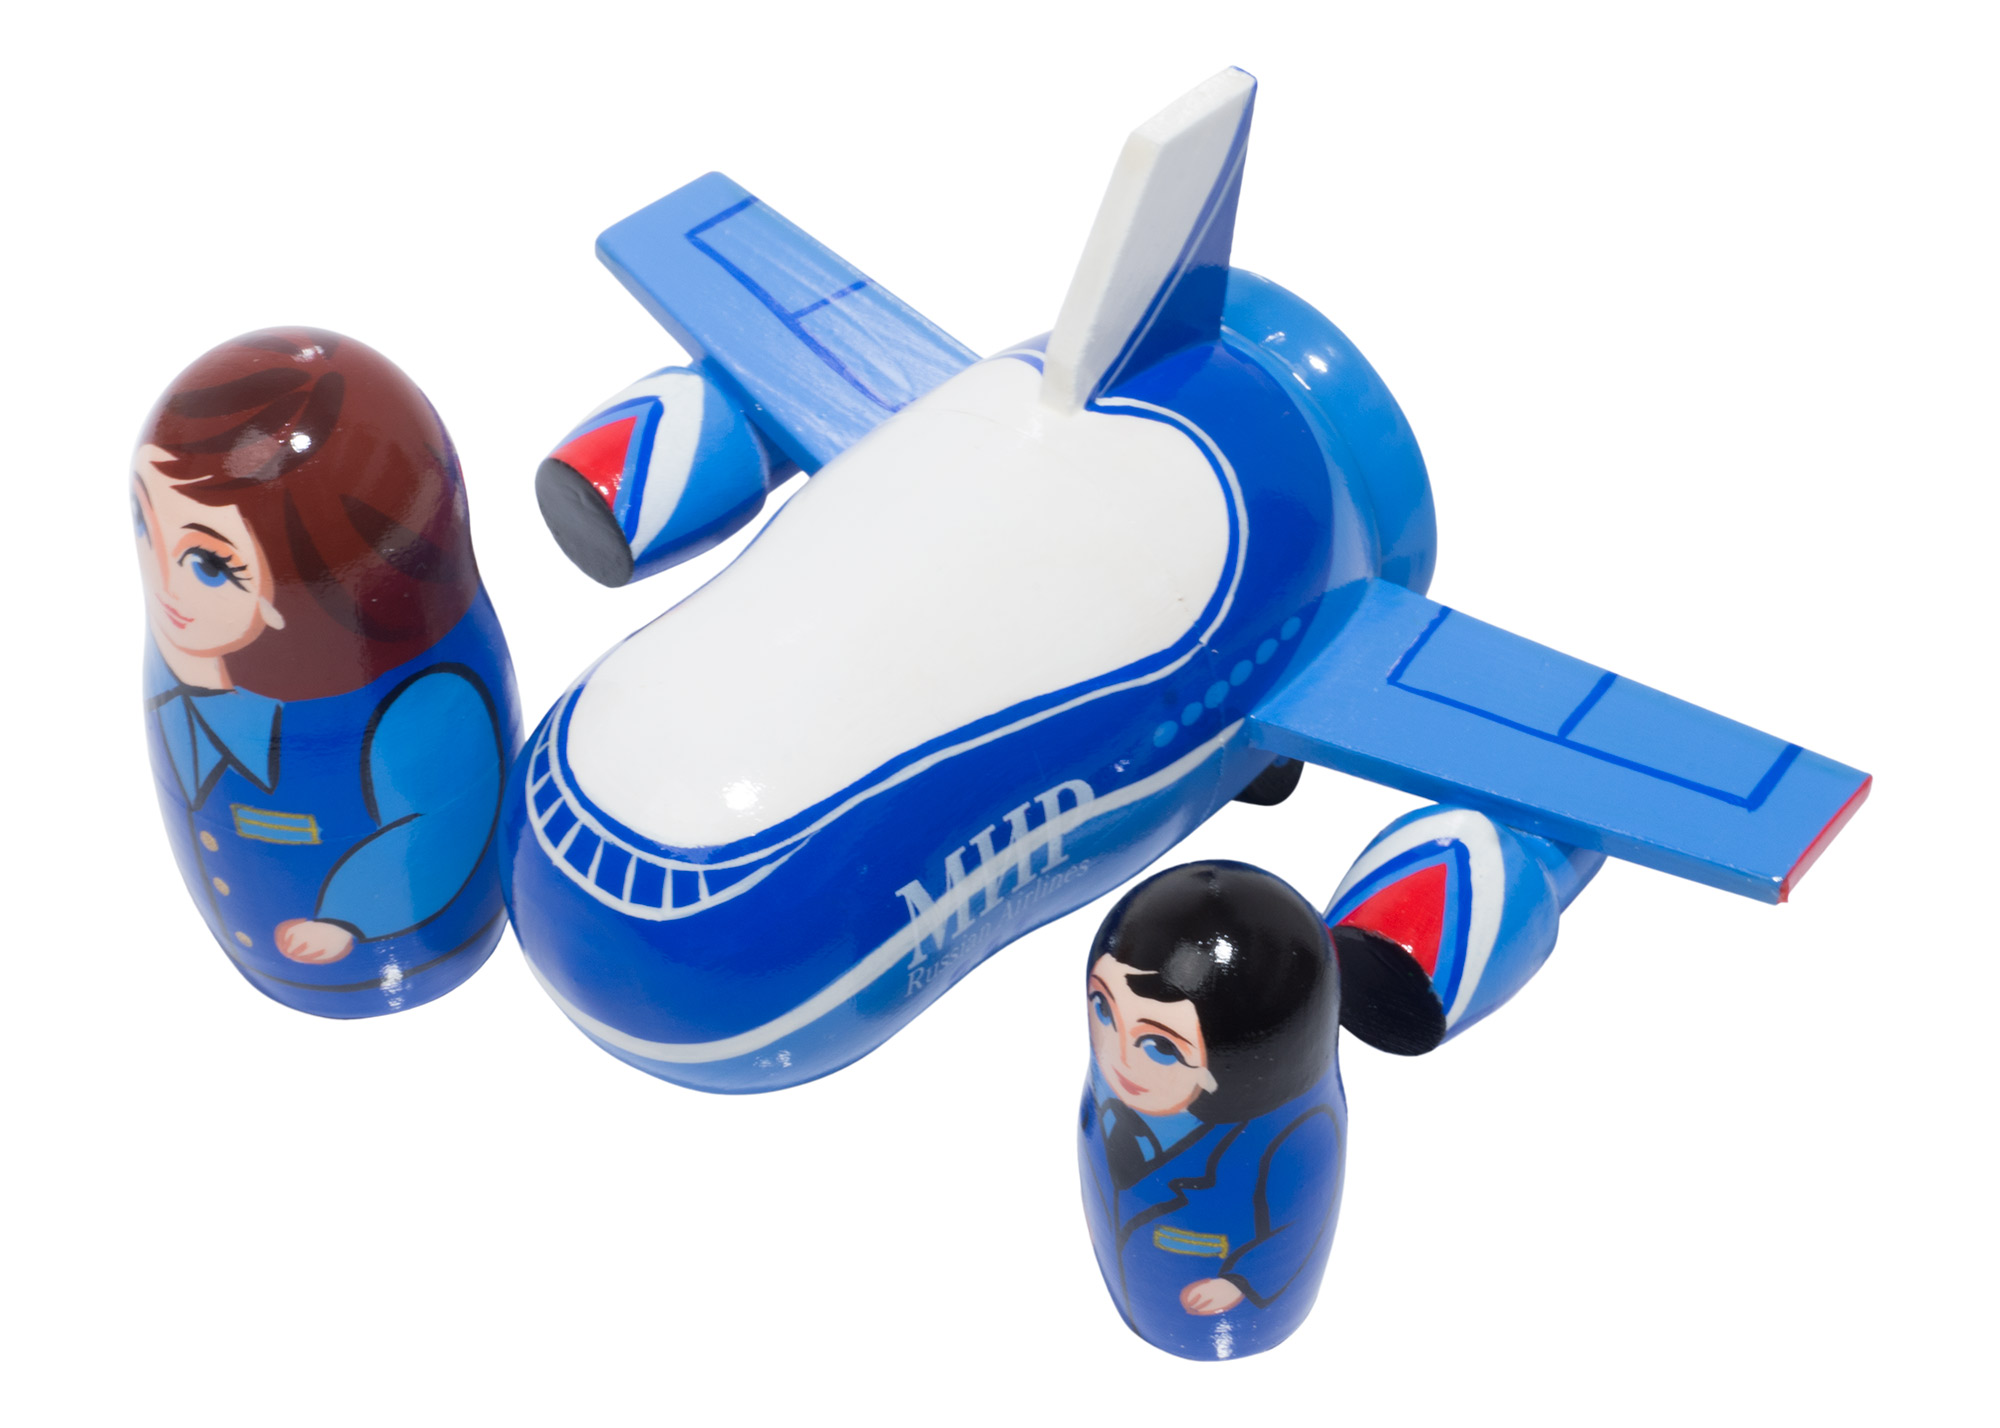 "Buy MIR Airplane Nesting Doll 3pc./4"" at GoldenCockerel.com"